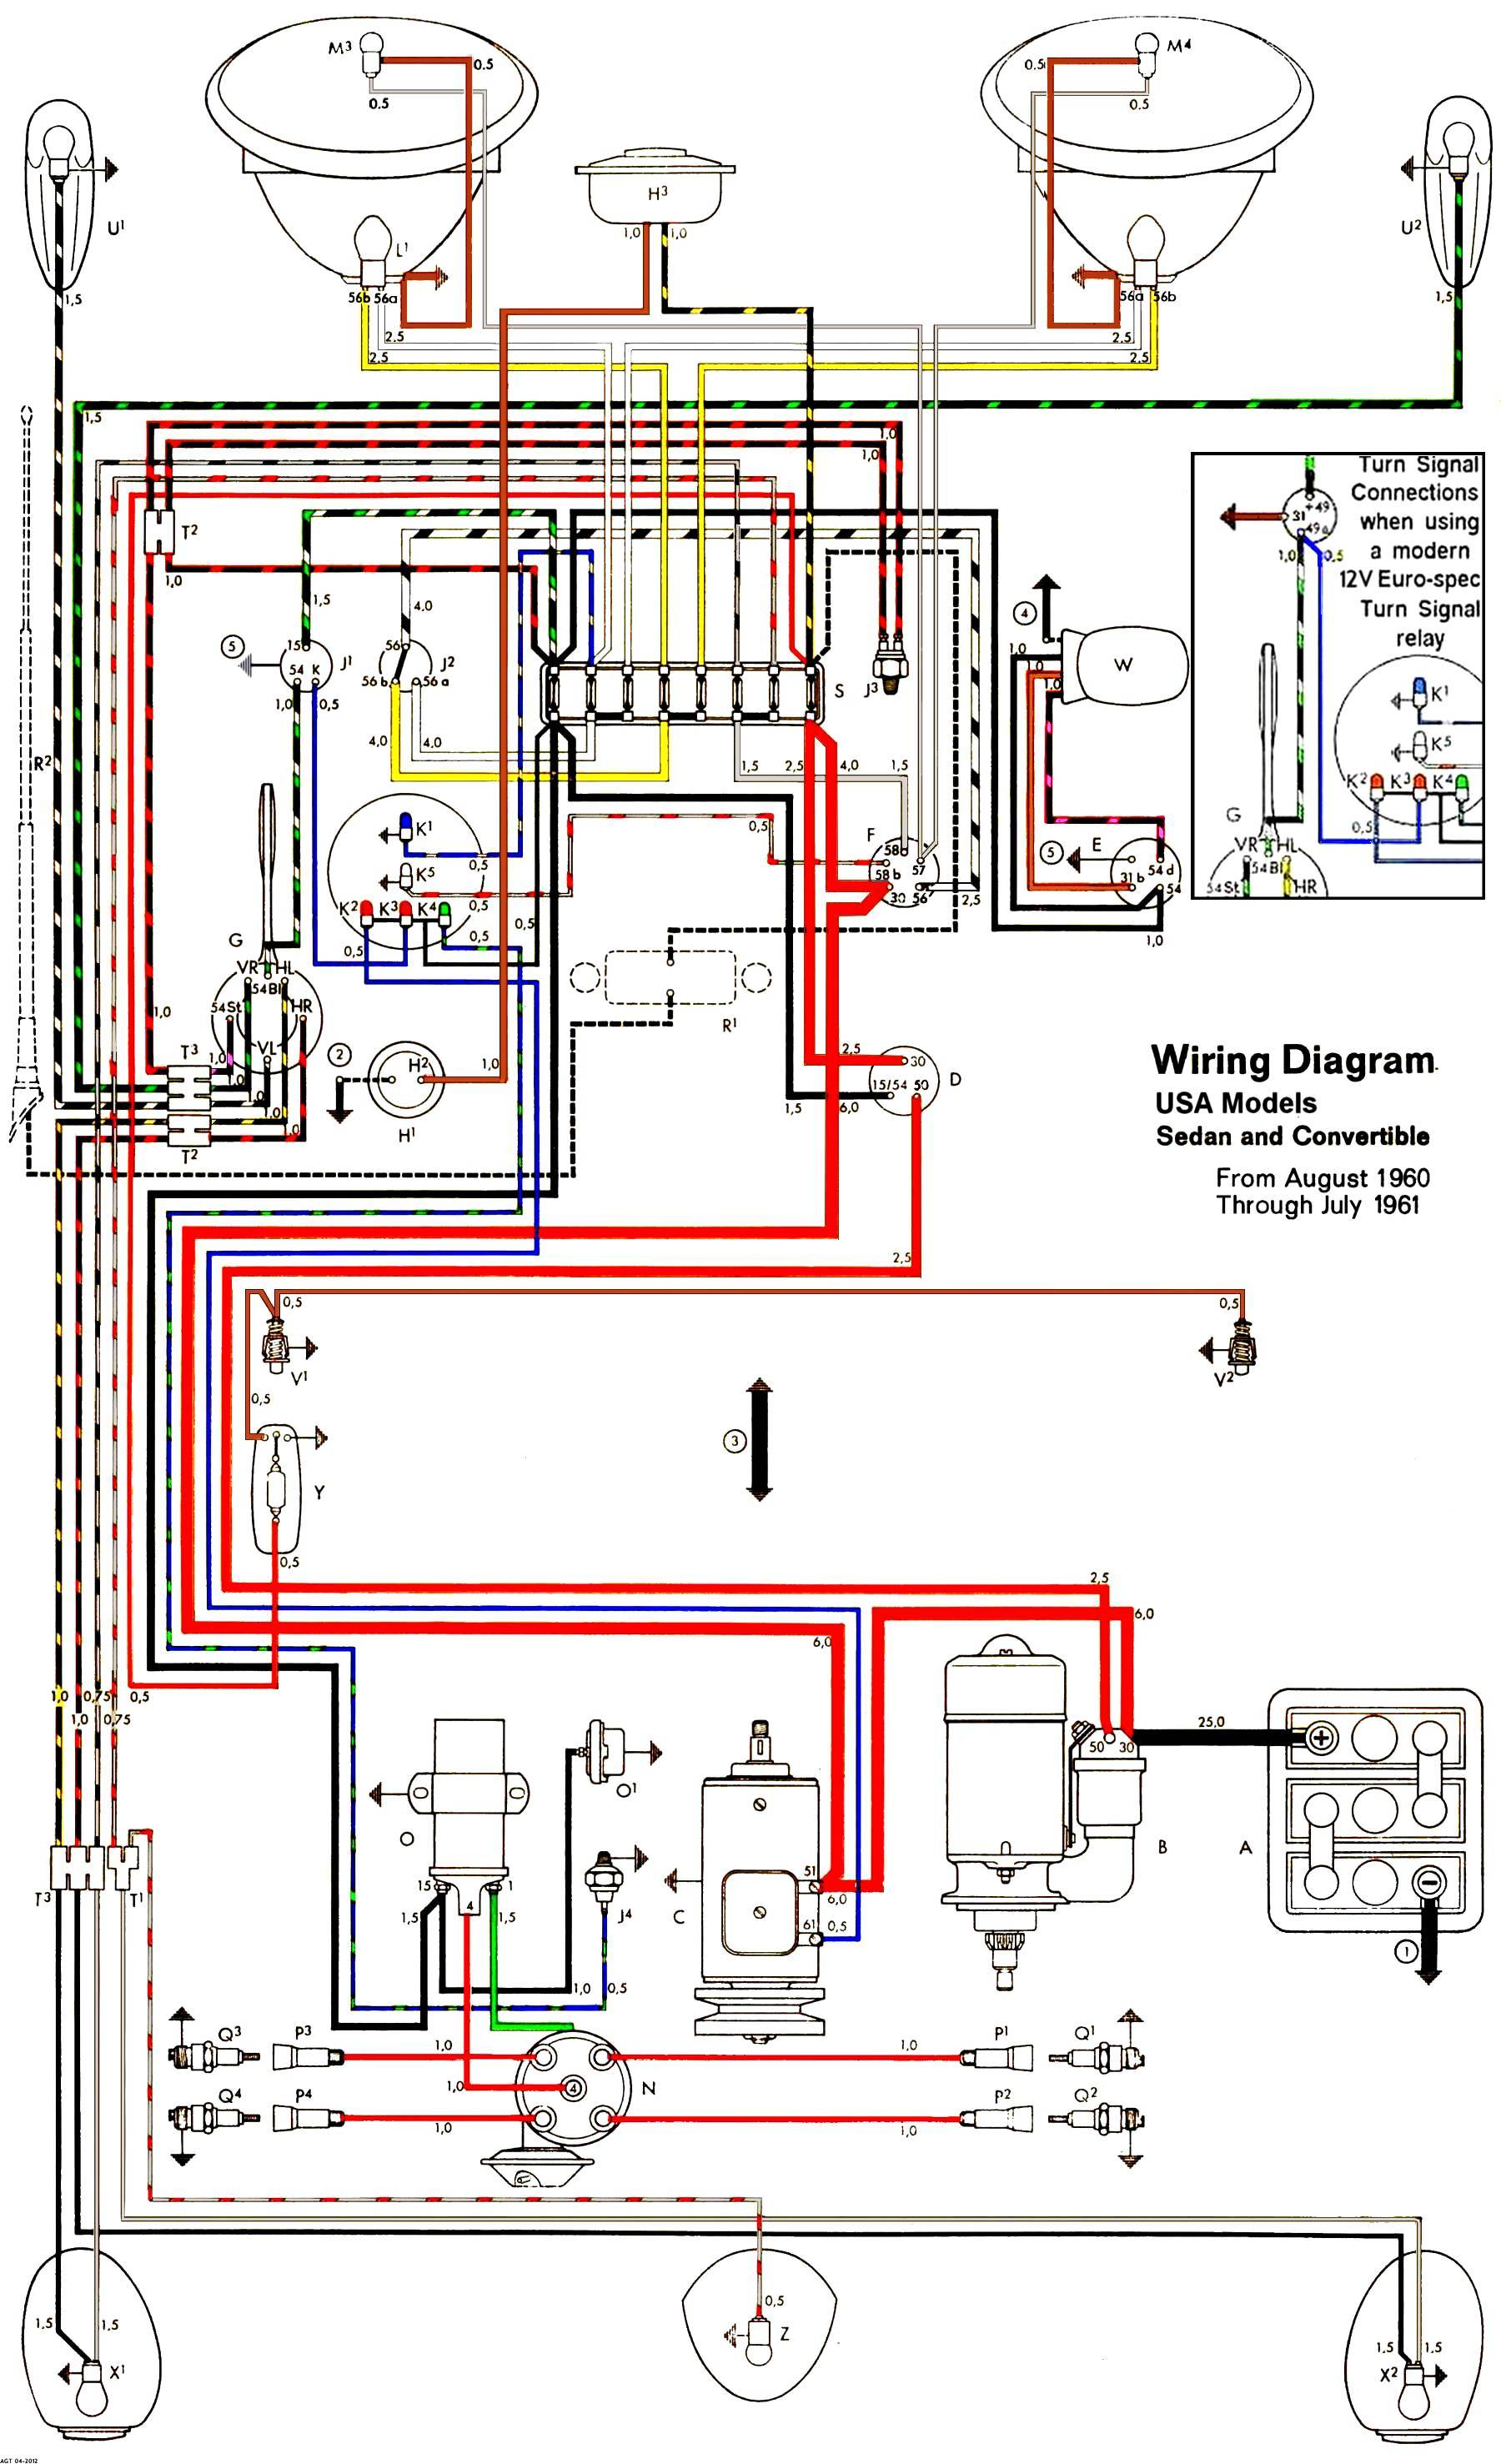 Vw Beetle Generator Wiring Diagram Just Another Blog Volkswagen Voltage Regulator 1974 Good Guide Of U2022 Rh Getescorts Pro Bug Alternator